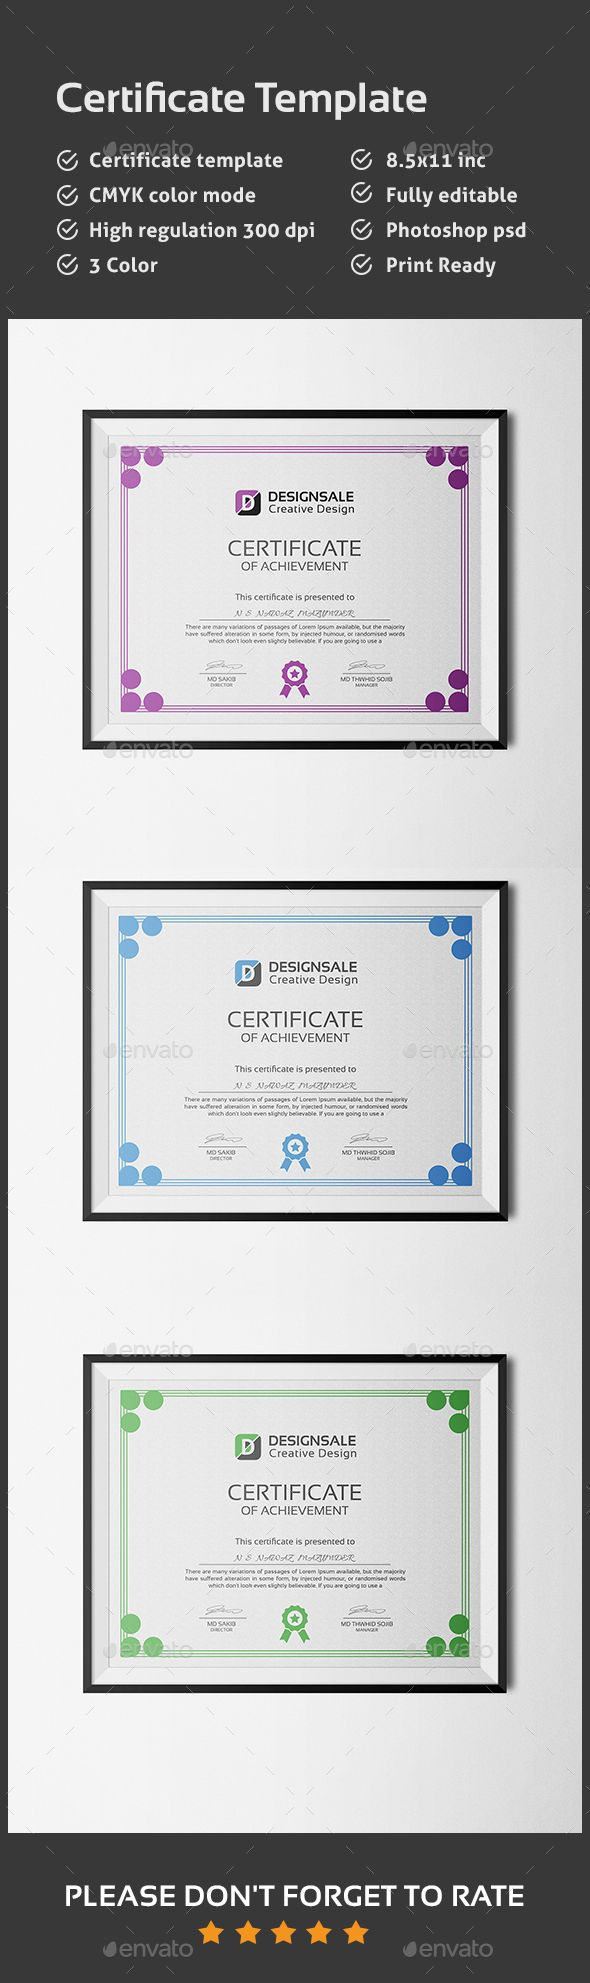 Best 25 graduation certificate template ideas on pinterest best 25 graduation certificate template ideas on pinterest award template award certificates and free printable certificate templates 1betcityfo Images